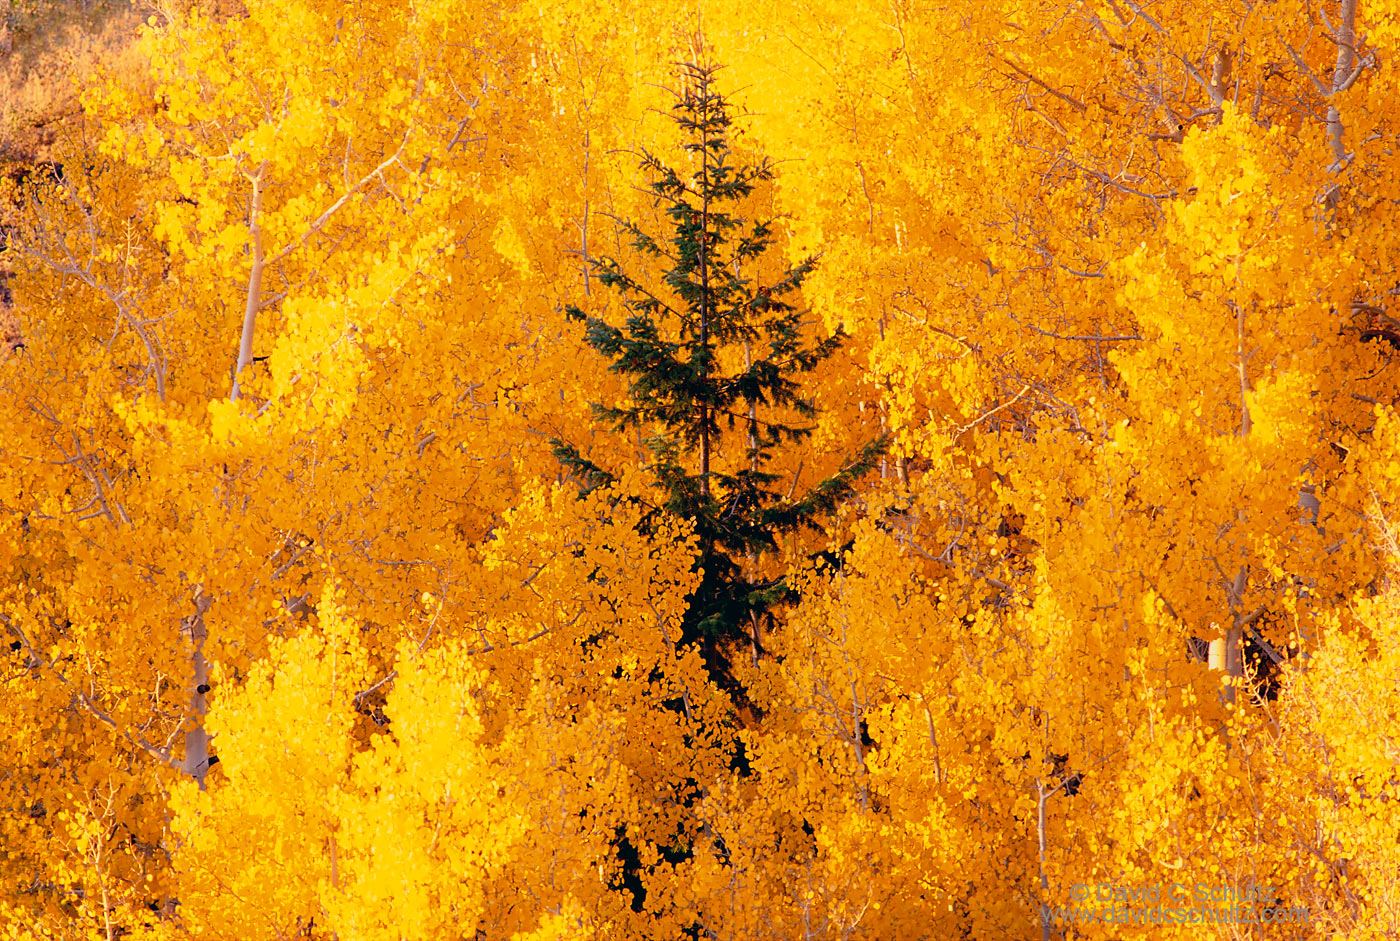 Colorful fall aspen trees in the Dixie national Forest, Utah - Image #3-1372